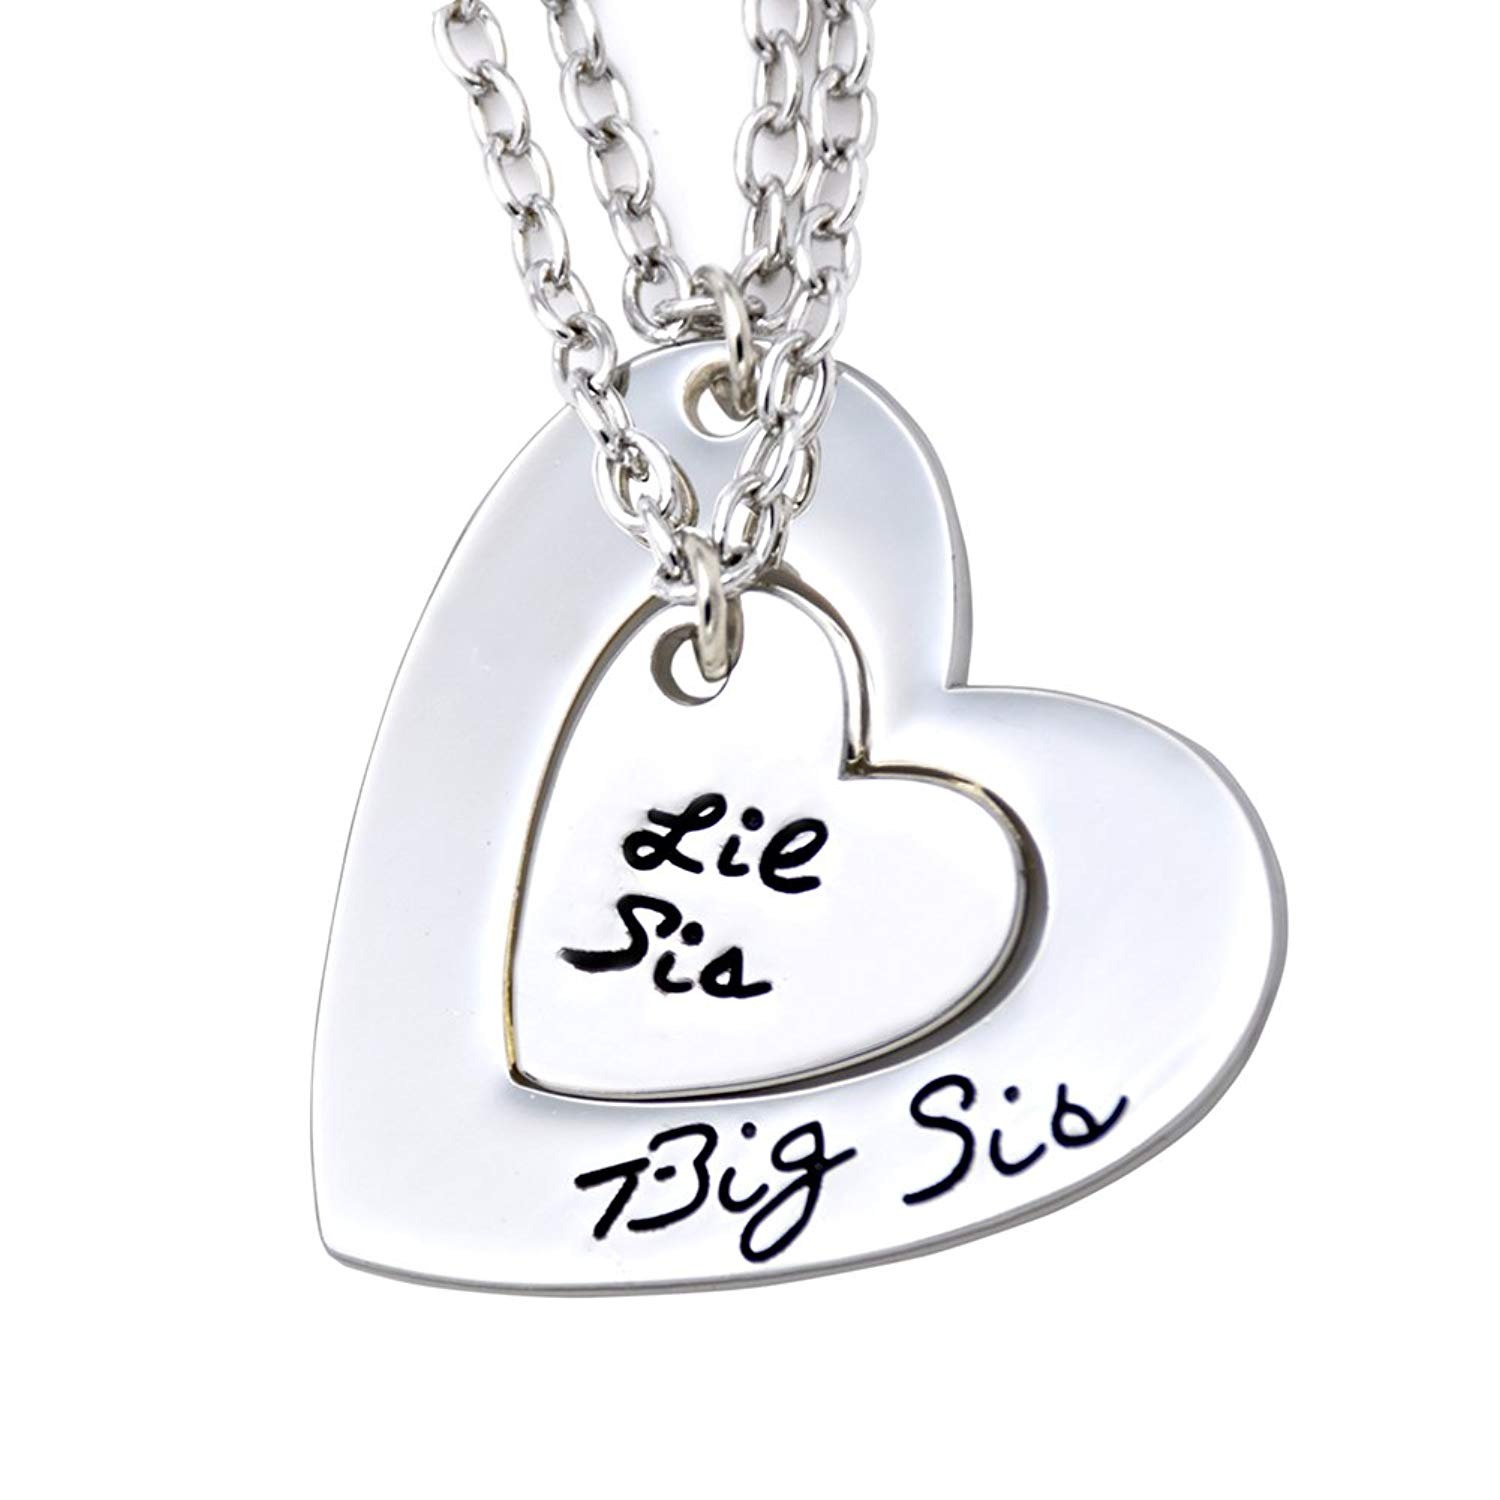 7cf3309c66 Get Quotations · O.RIYA Big Sis Lil Sis Necklaces Set for 2 ,2pcs/set Silver